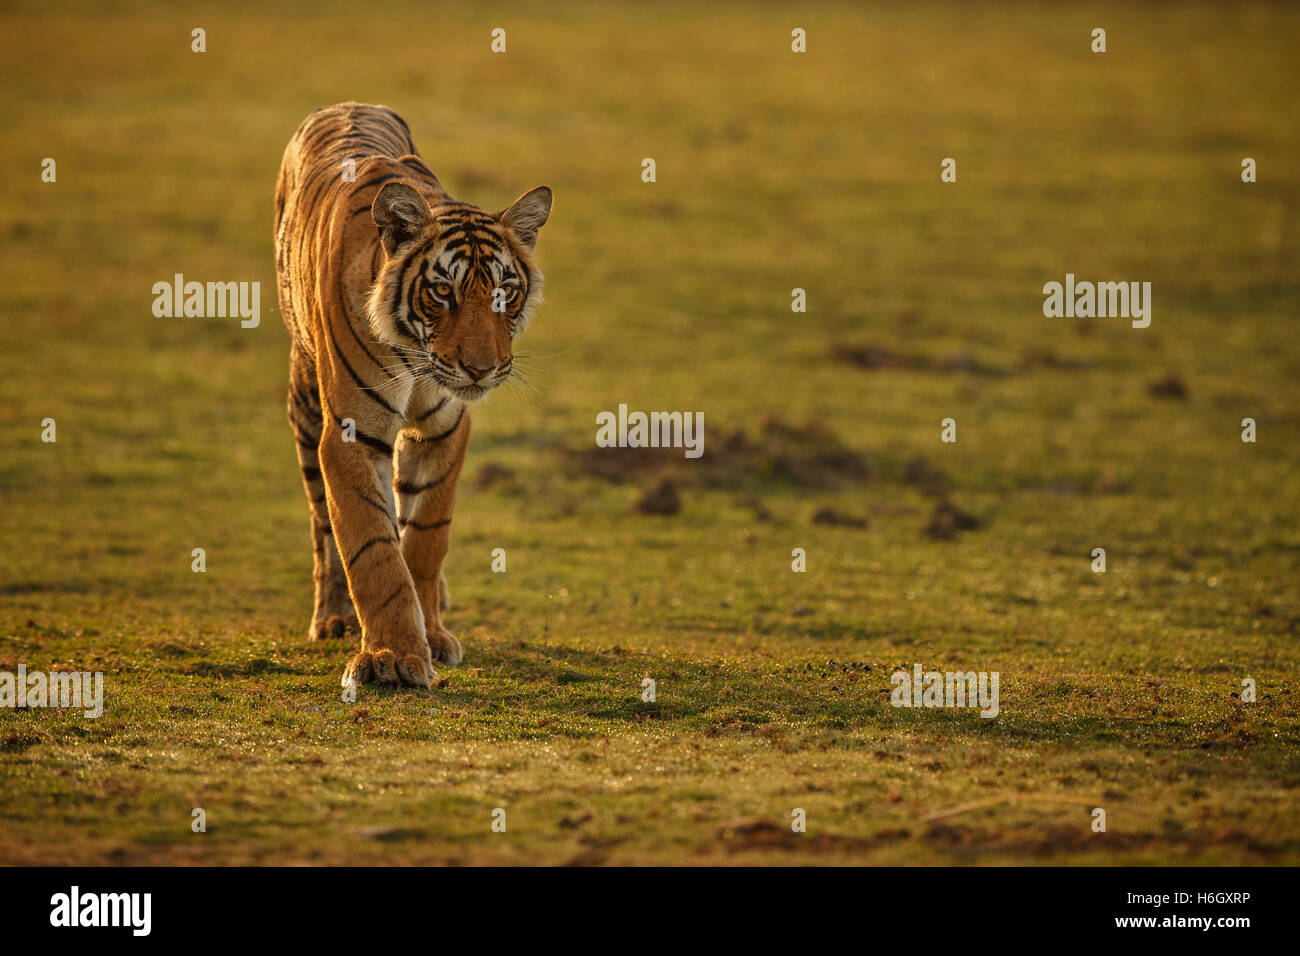 Tiger in a beautiful golden light in Ranthambhore National Park in India. - Stock Image